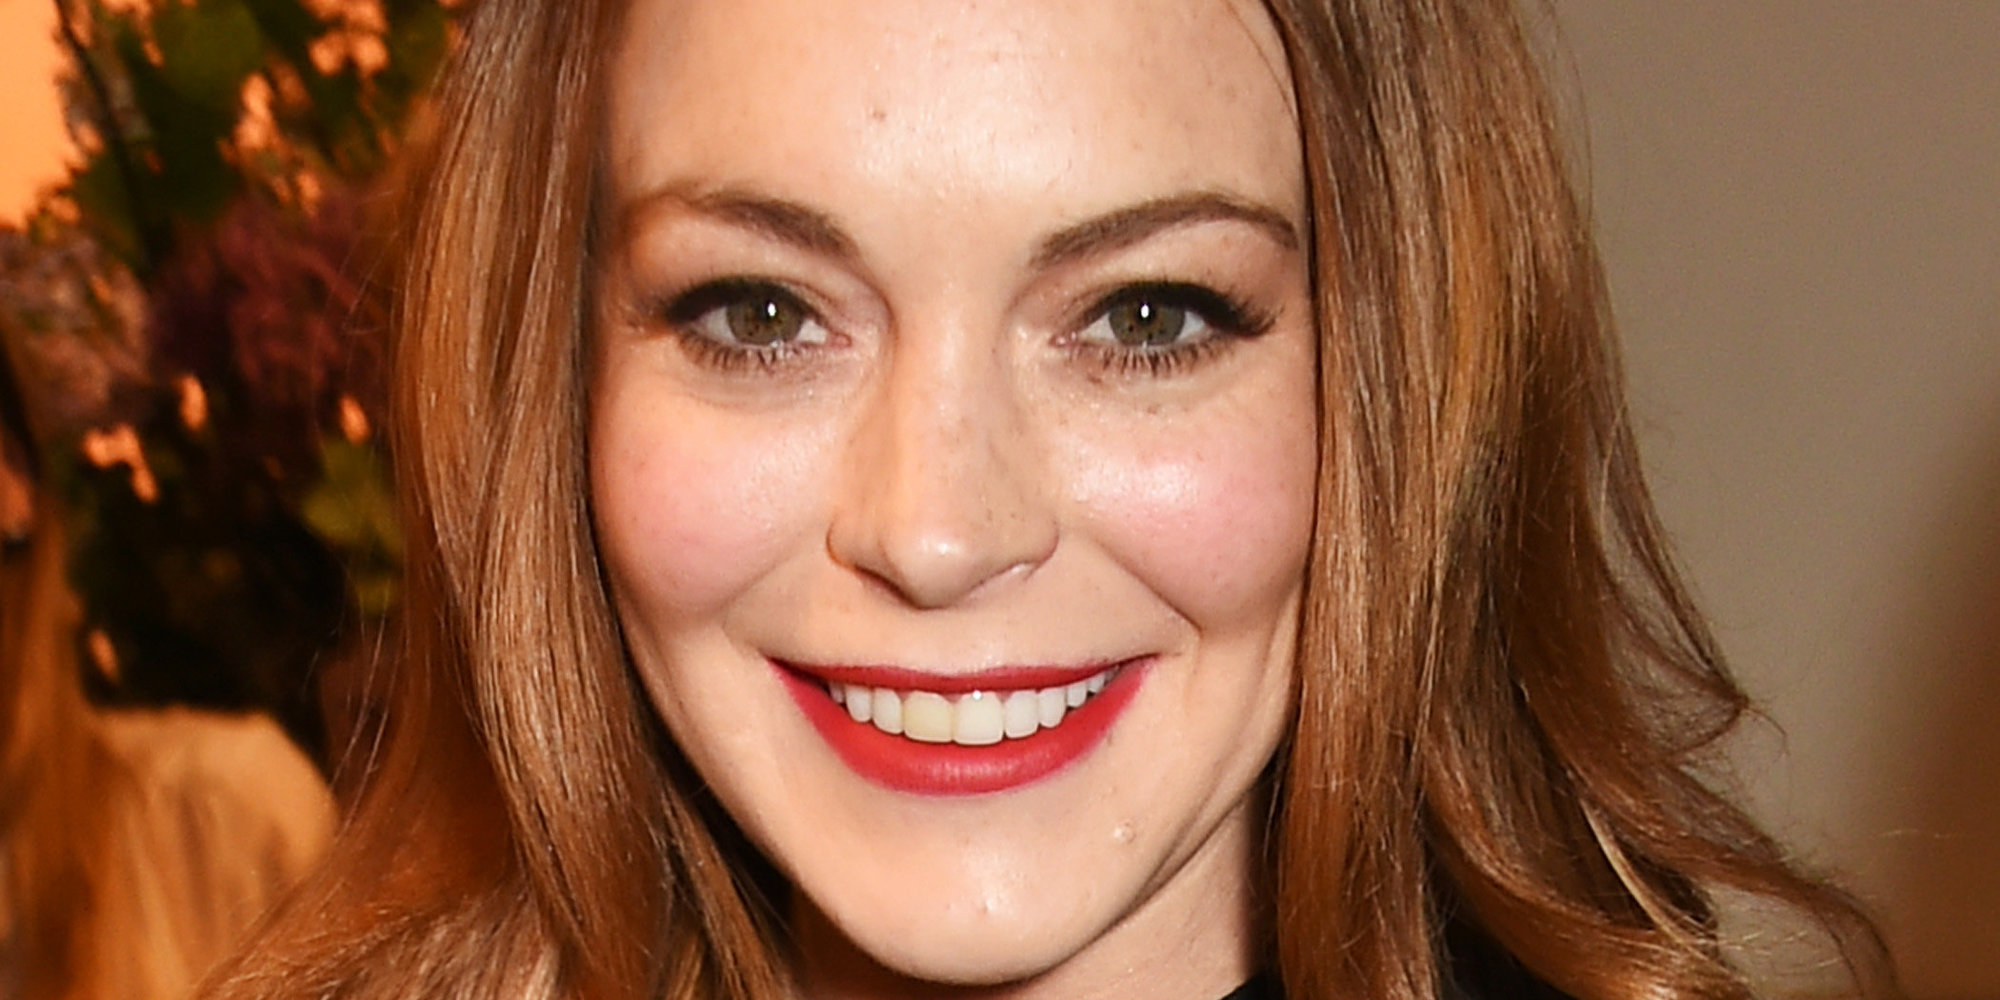 """lindsay single muslim girls Last week, lindsay lohan shocked her millions of followers and fans when she deleted all her posts on instagram and twitter this weekend, the """"mean girls"""" star is sparking rumors that she may have already converted to islam due to her arabic greeting on the photo-sharing platform."""